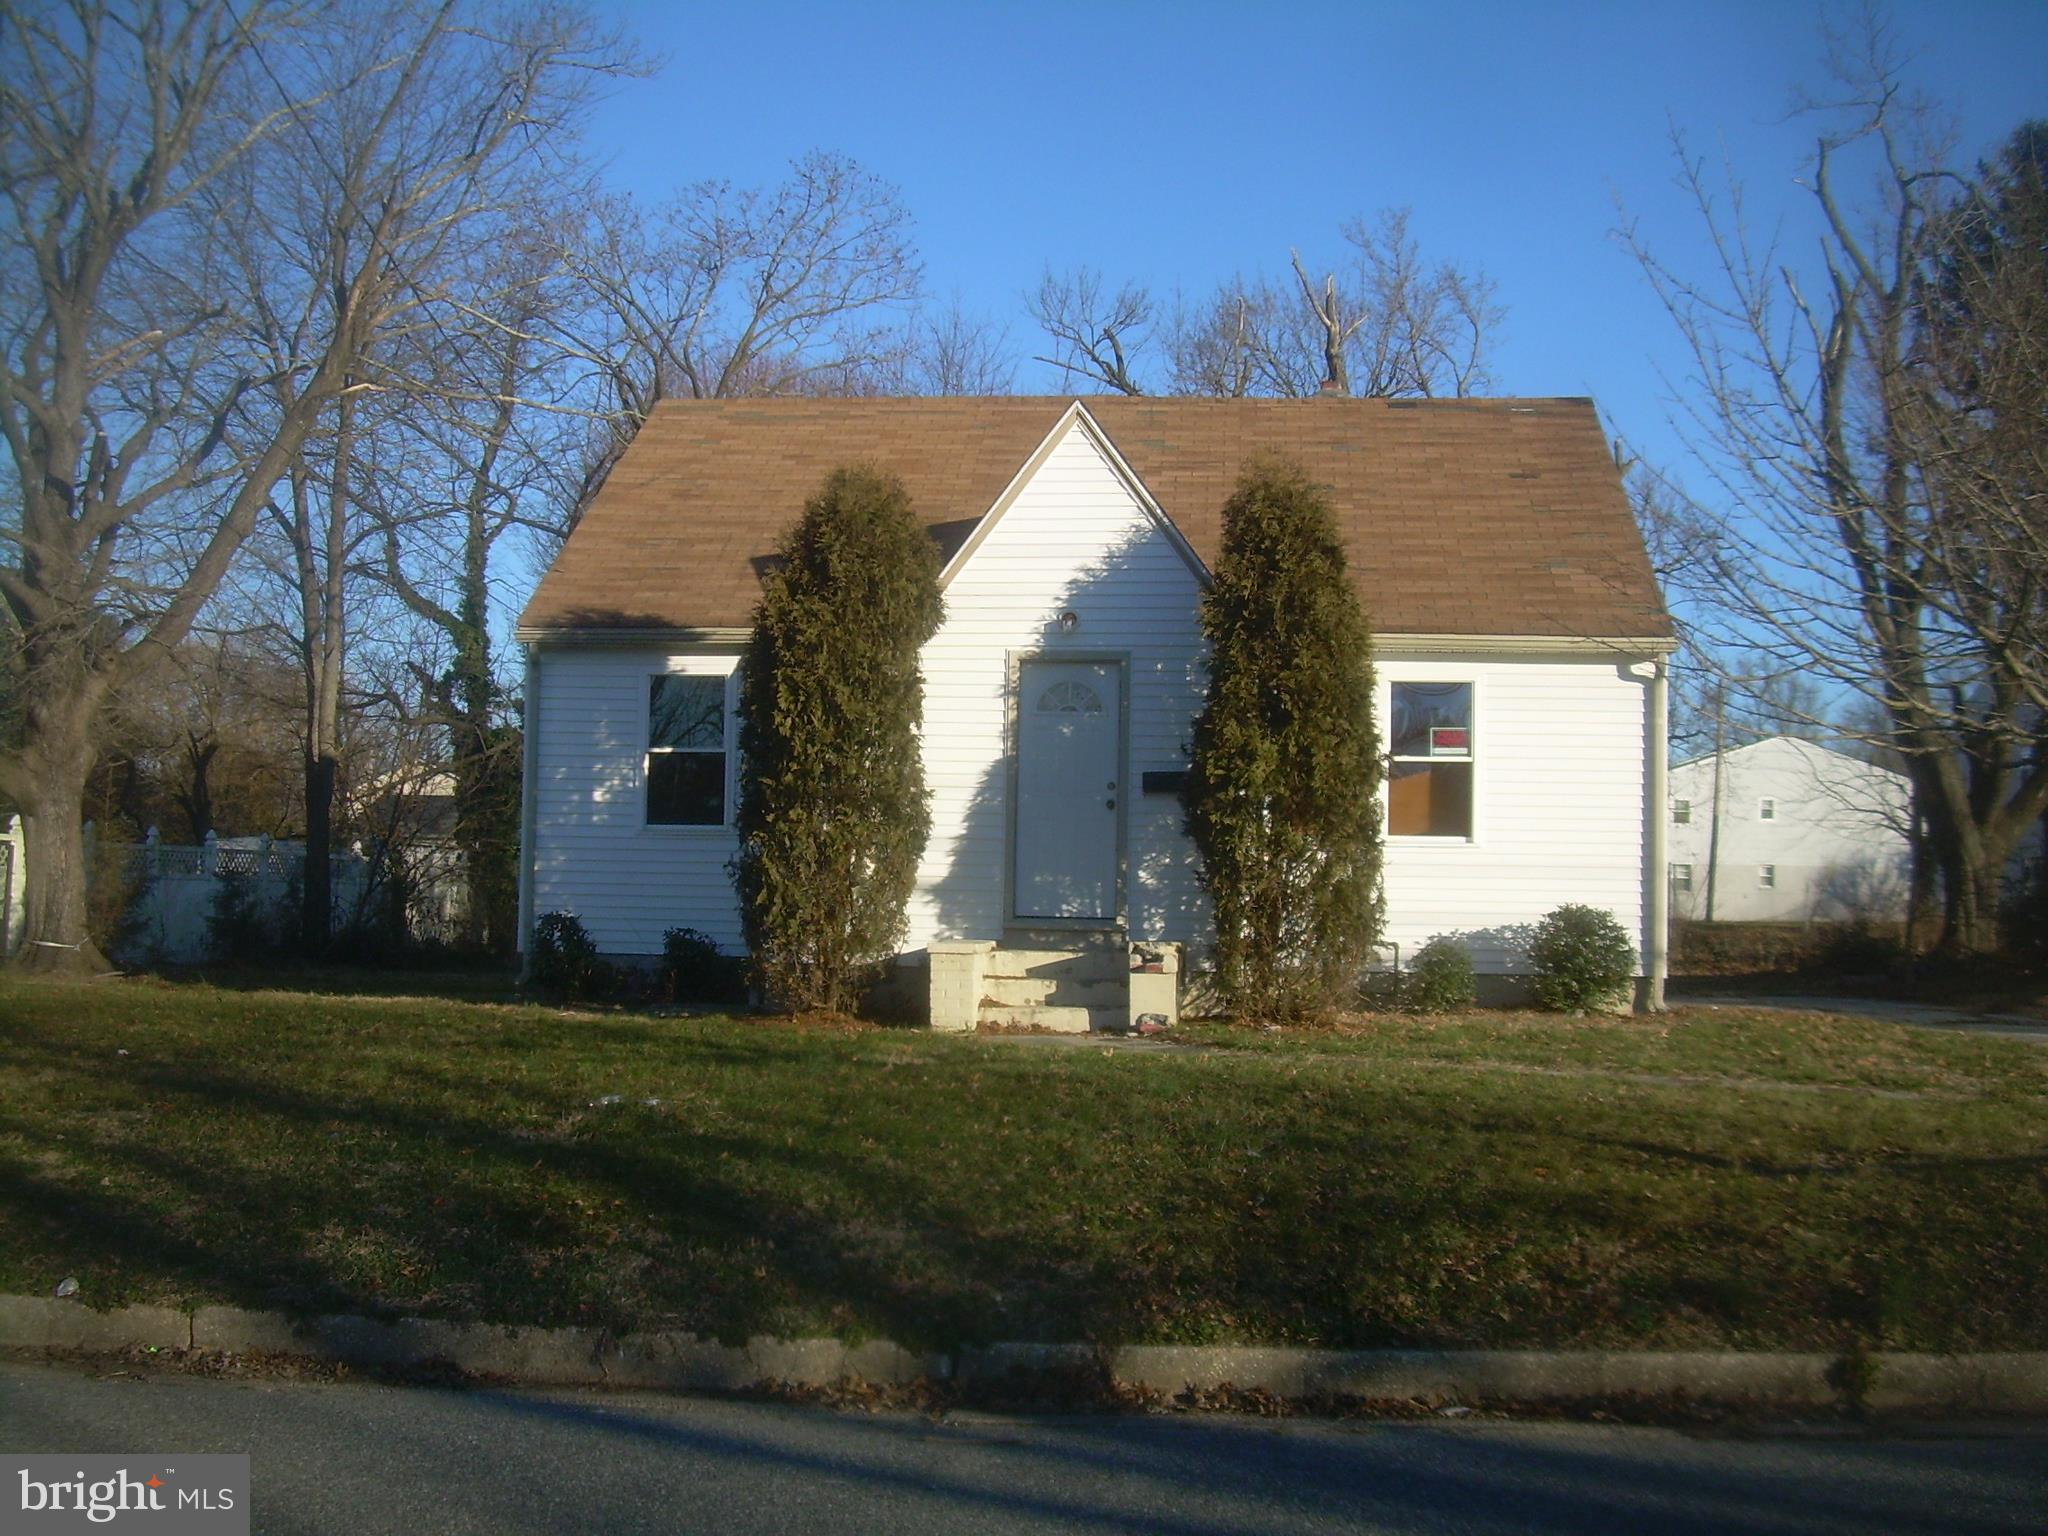 800 FLORENCE, VINELAND, NJ 08362